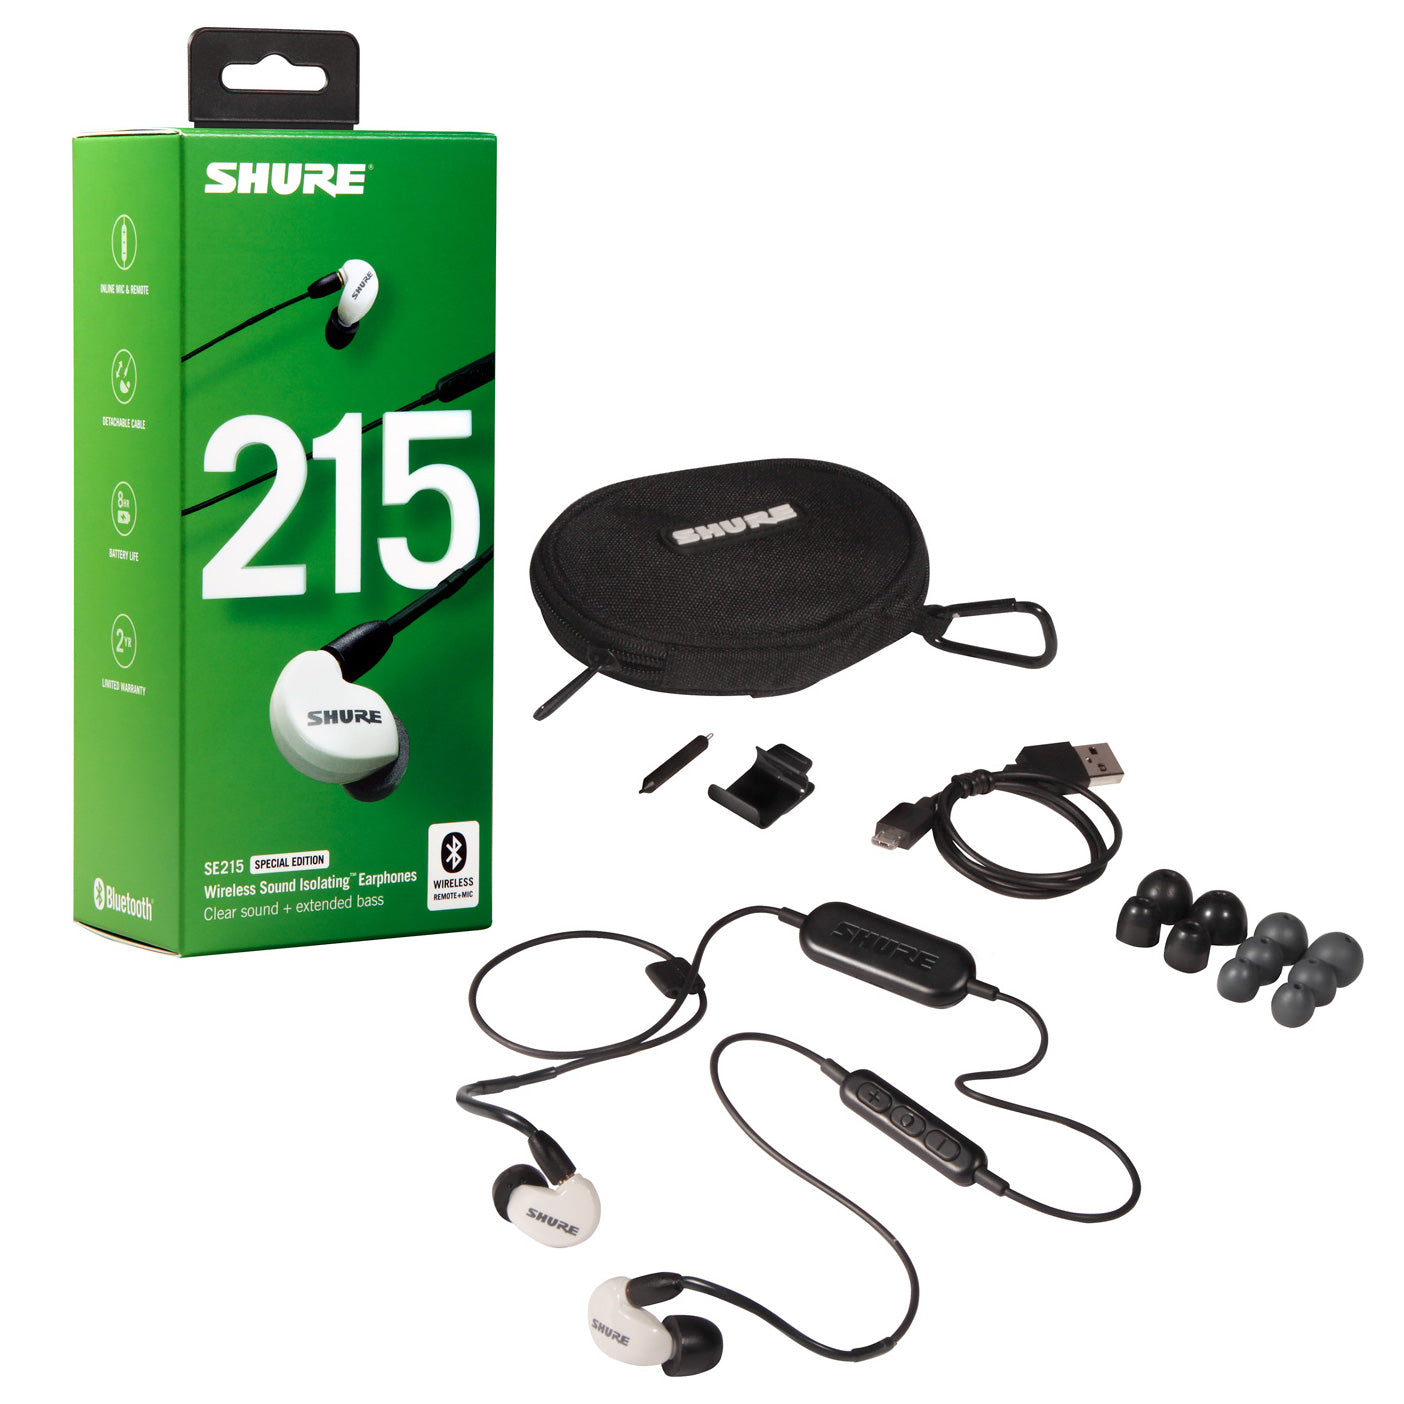 Shure SE215 Wireless Sound Isolating Earphones, White